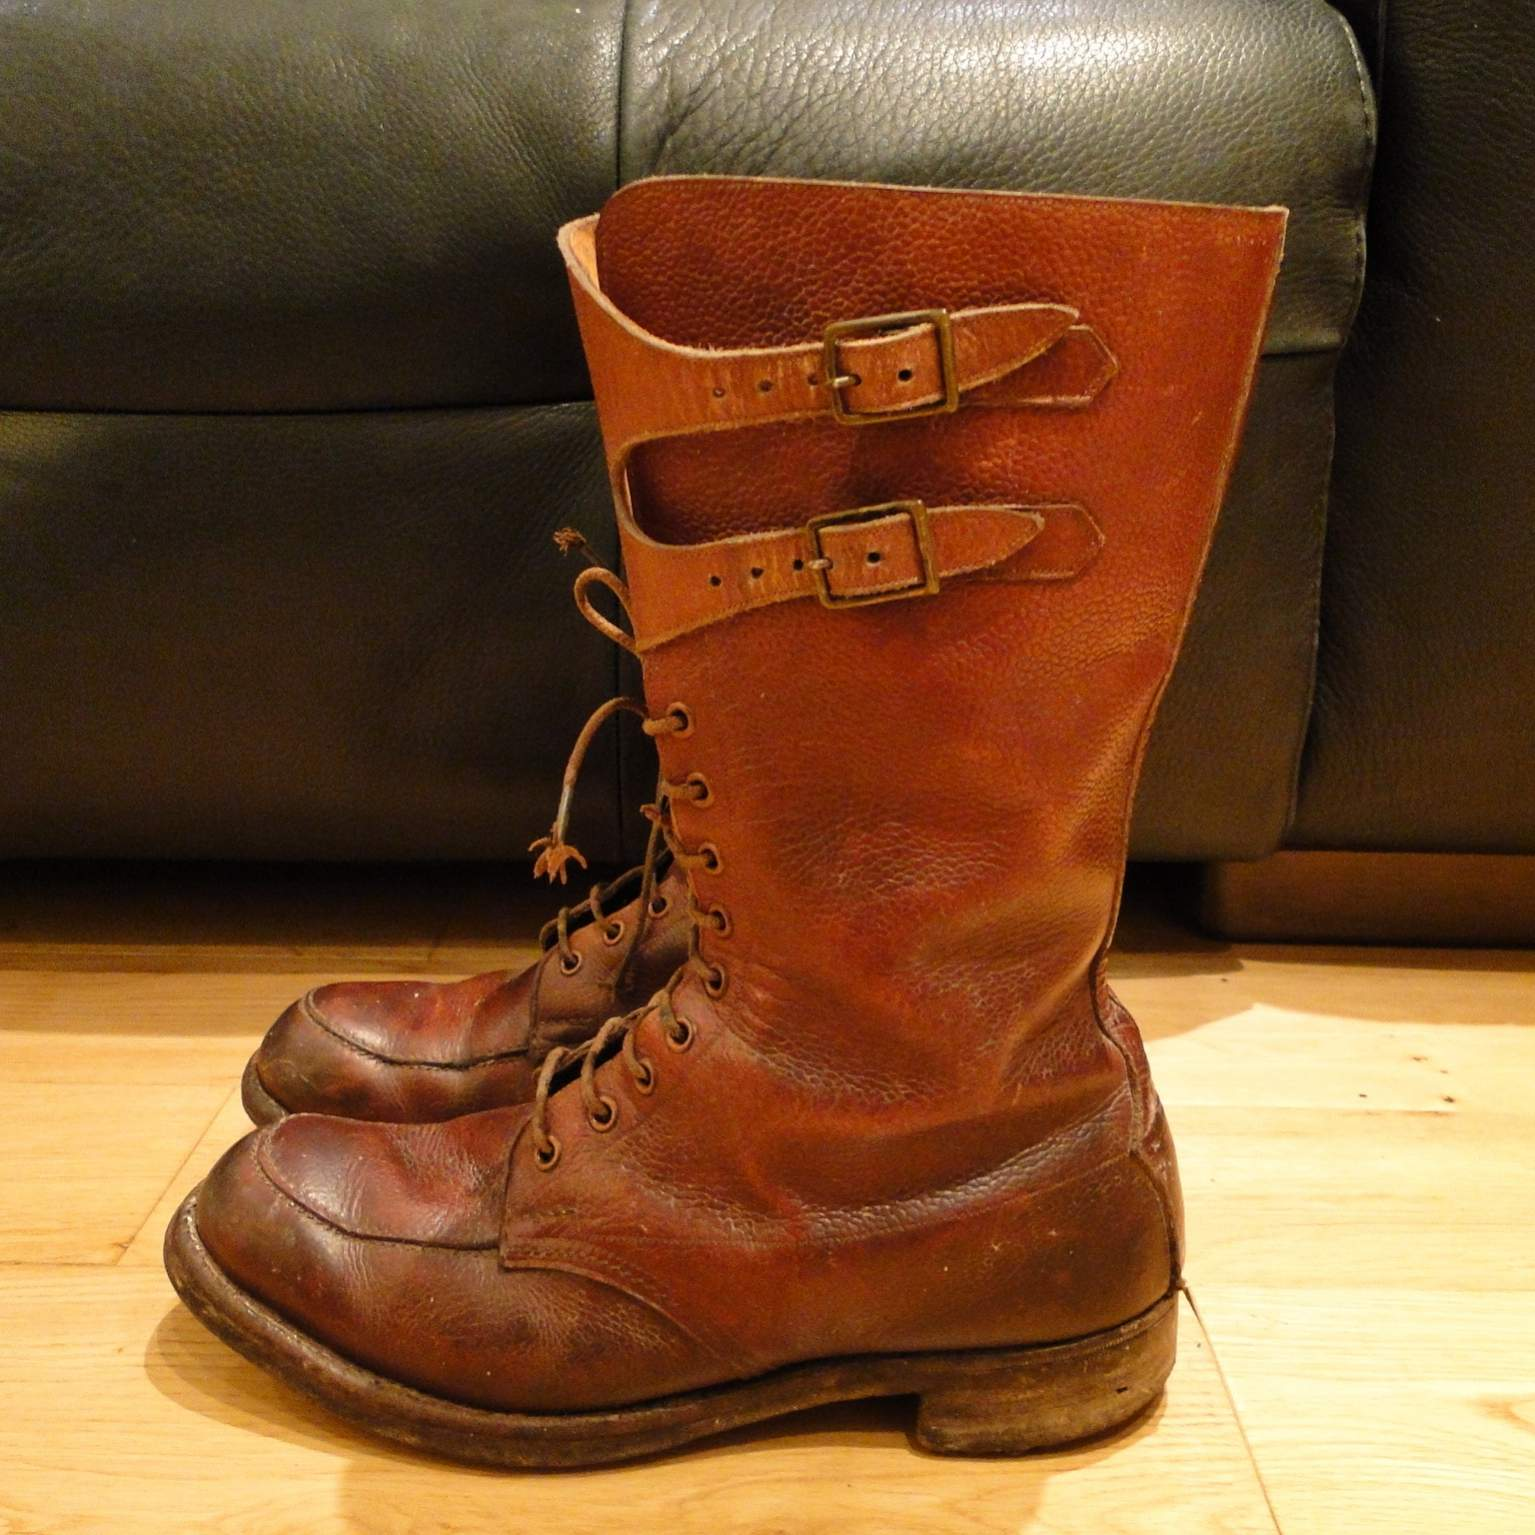 Wwii Double Buckle Boots D Information Required Ww British Army Field Combat